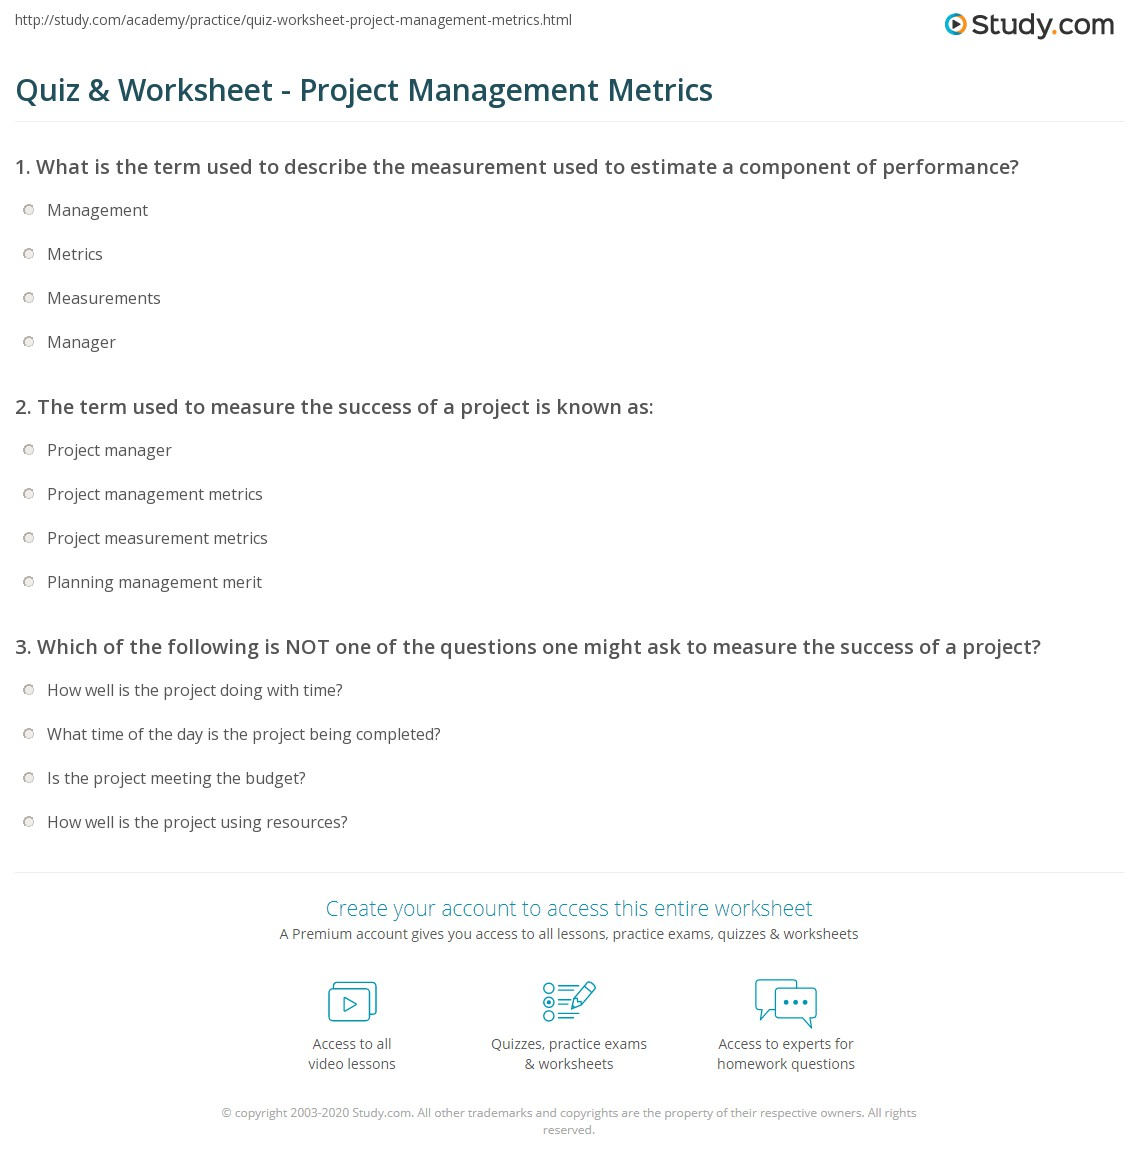 Quiz & Worksheet - Project Management Metrics | Study com